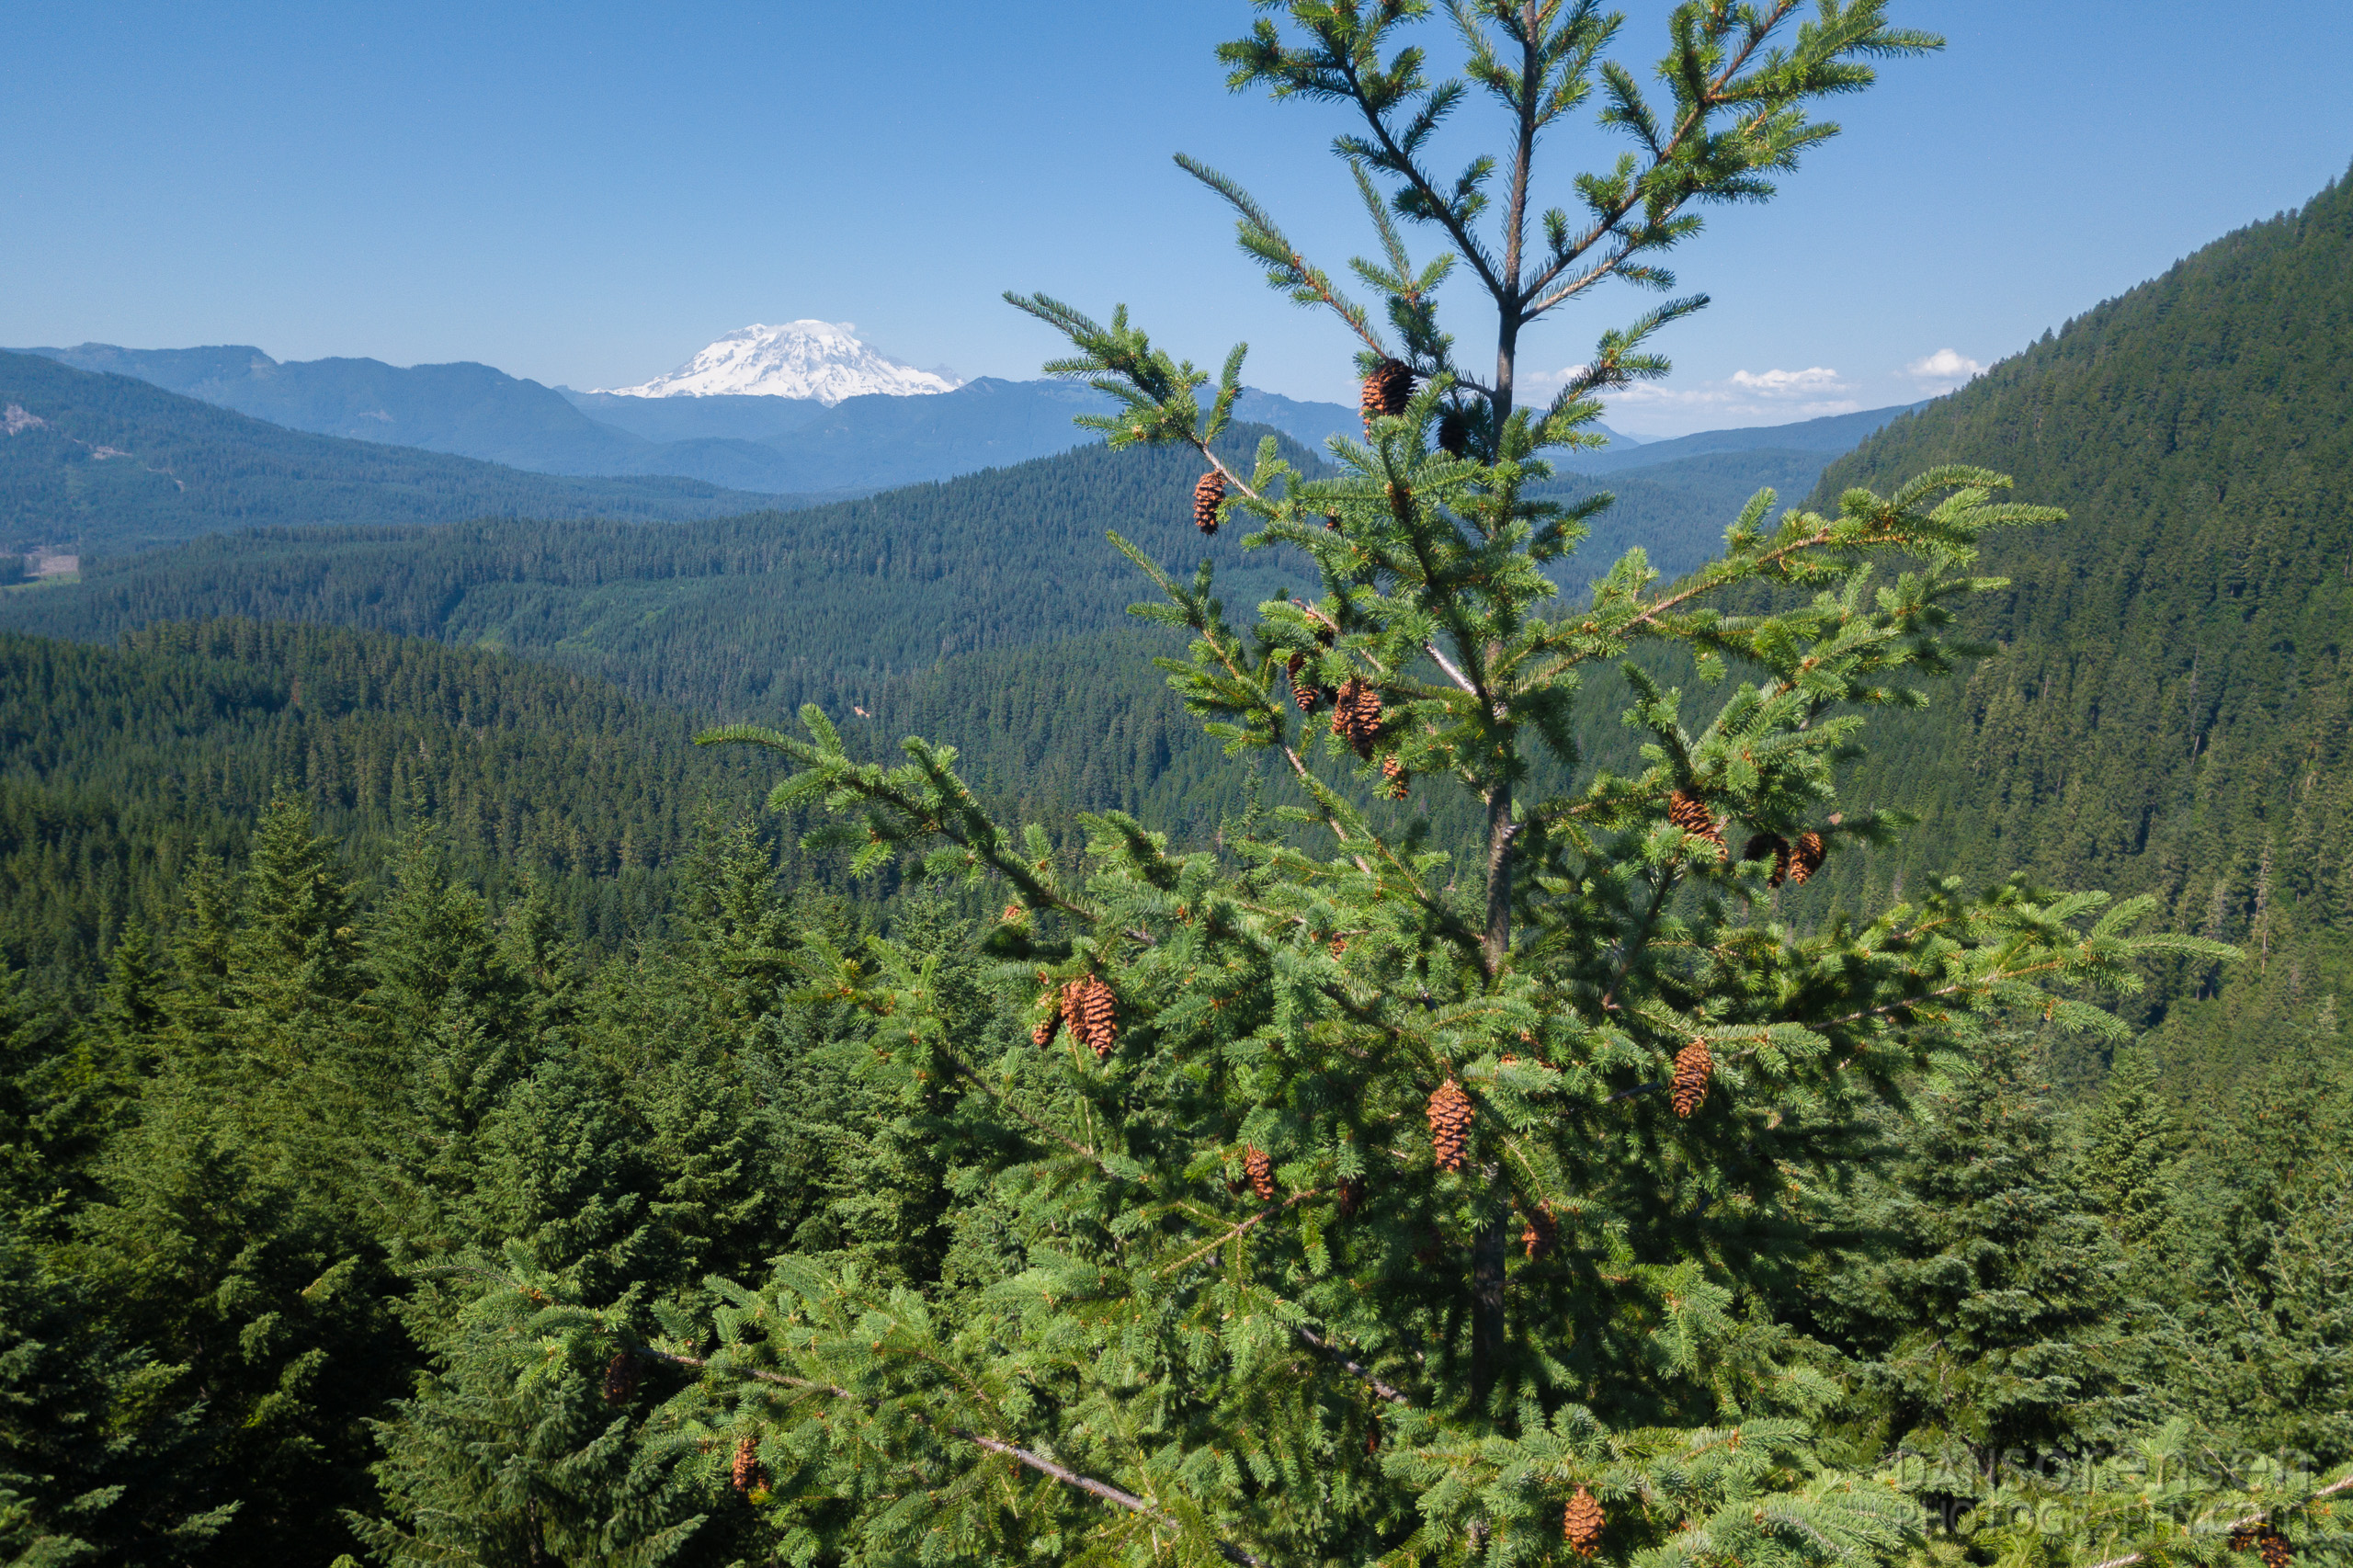 Mount Rainier from the Tree Tops